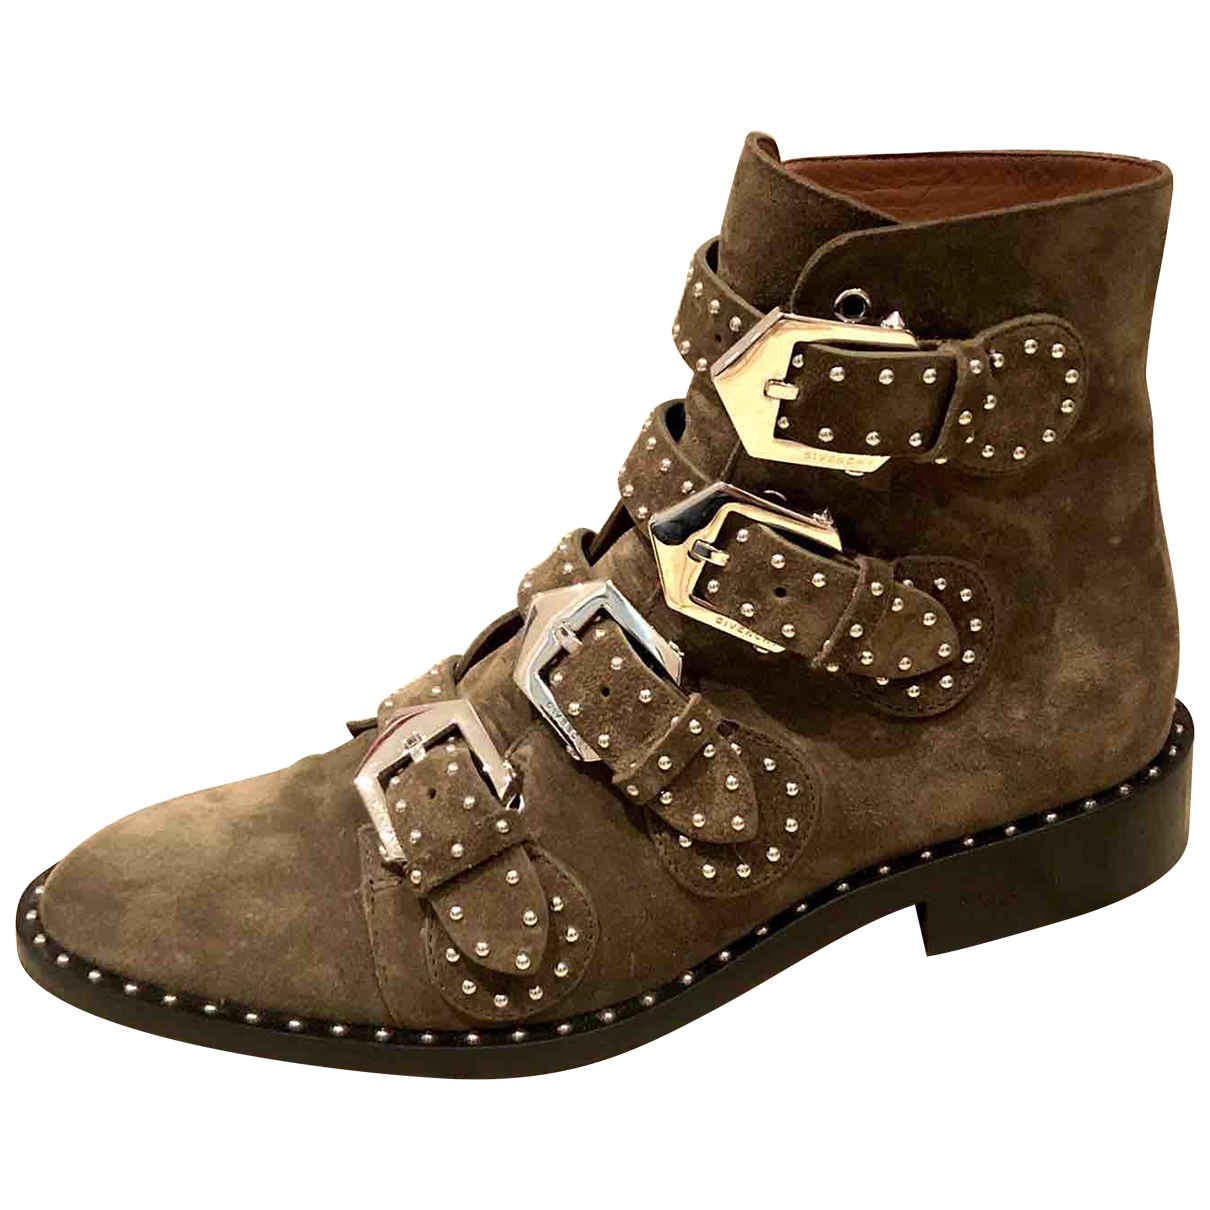 Givenchy N Khaki Suede Ankle boots for Women